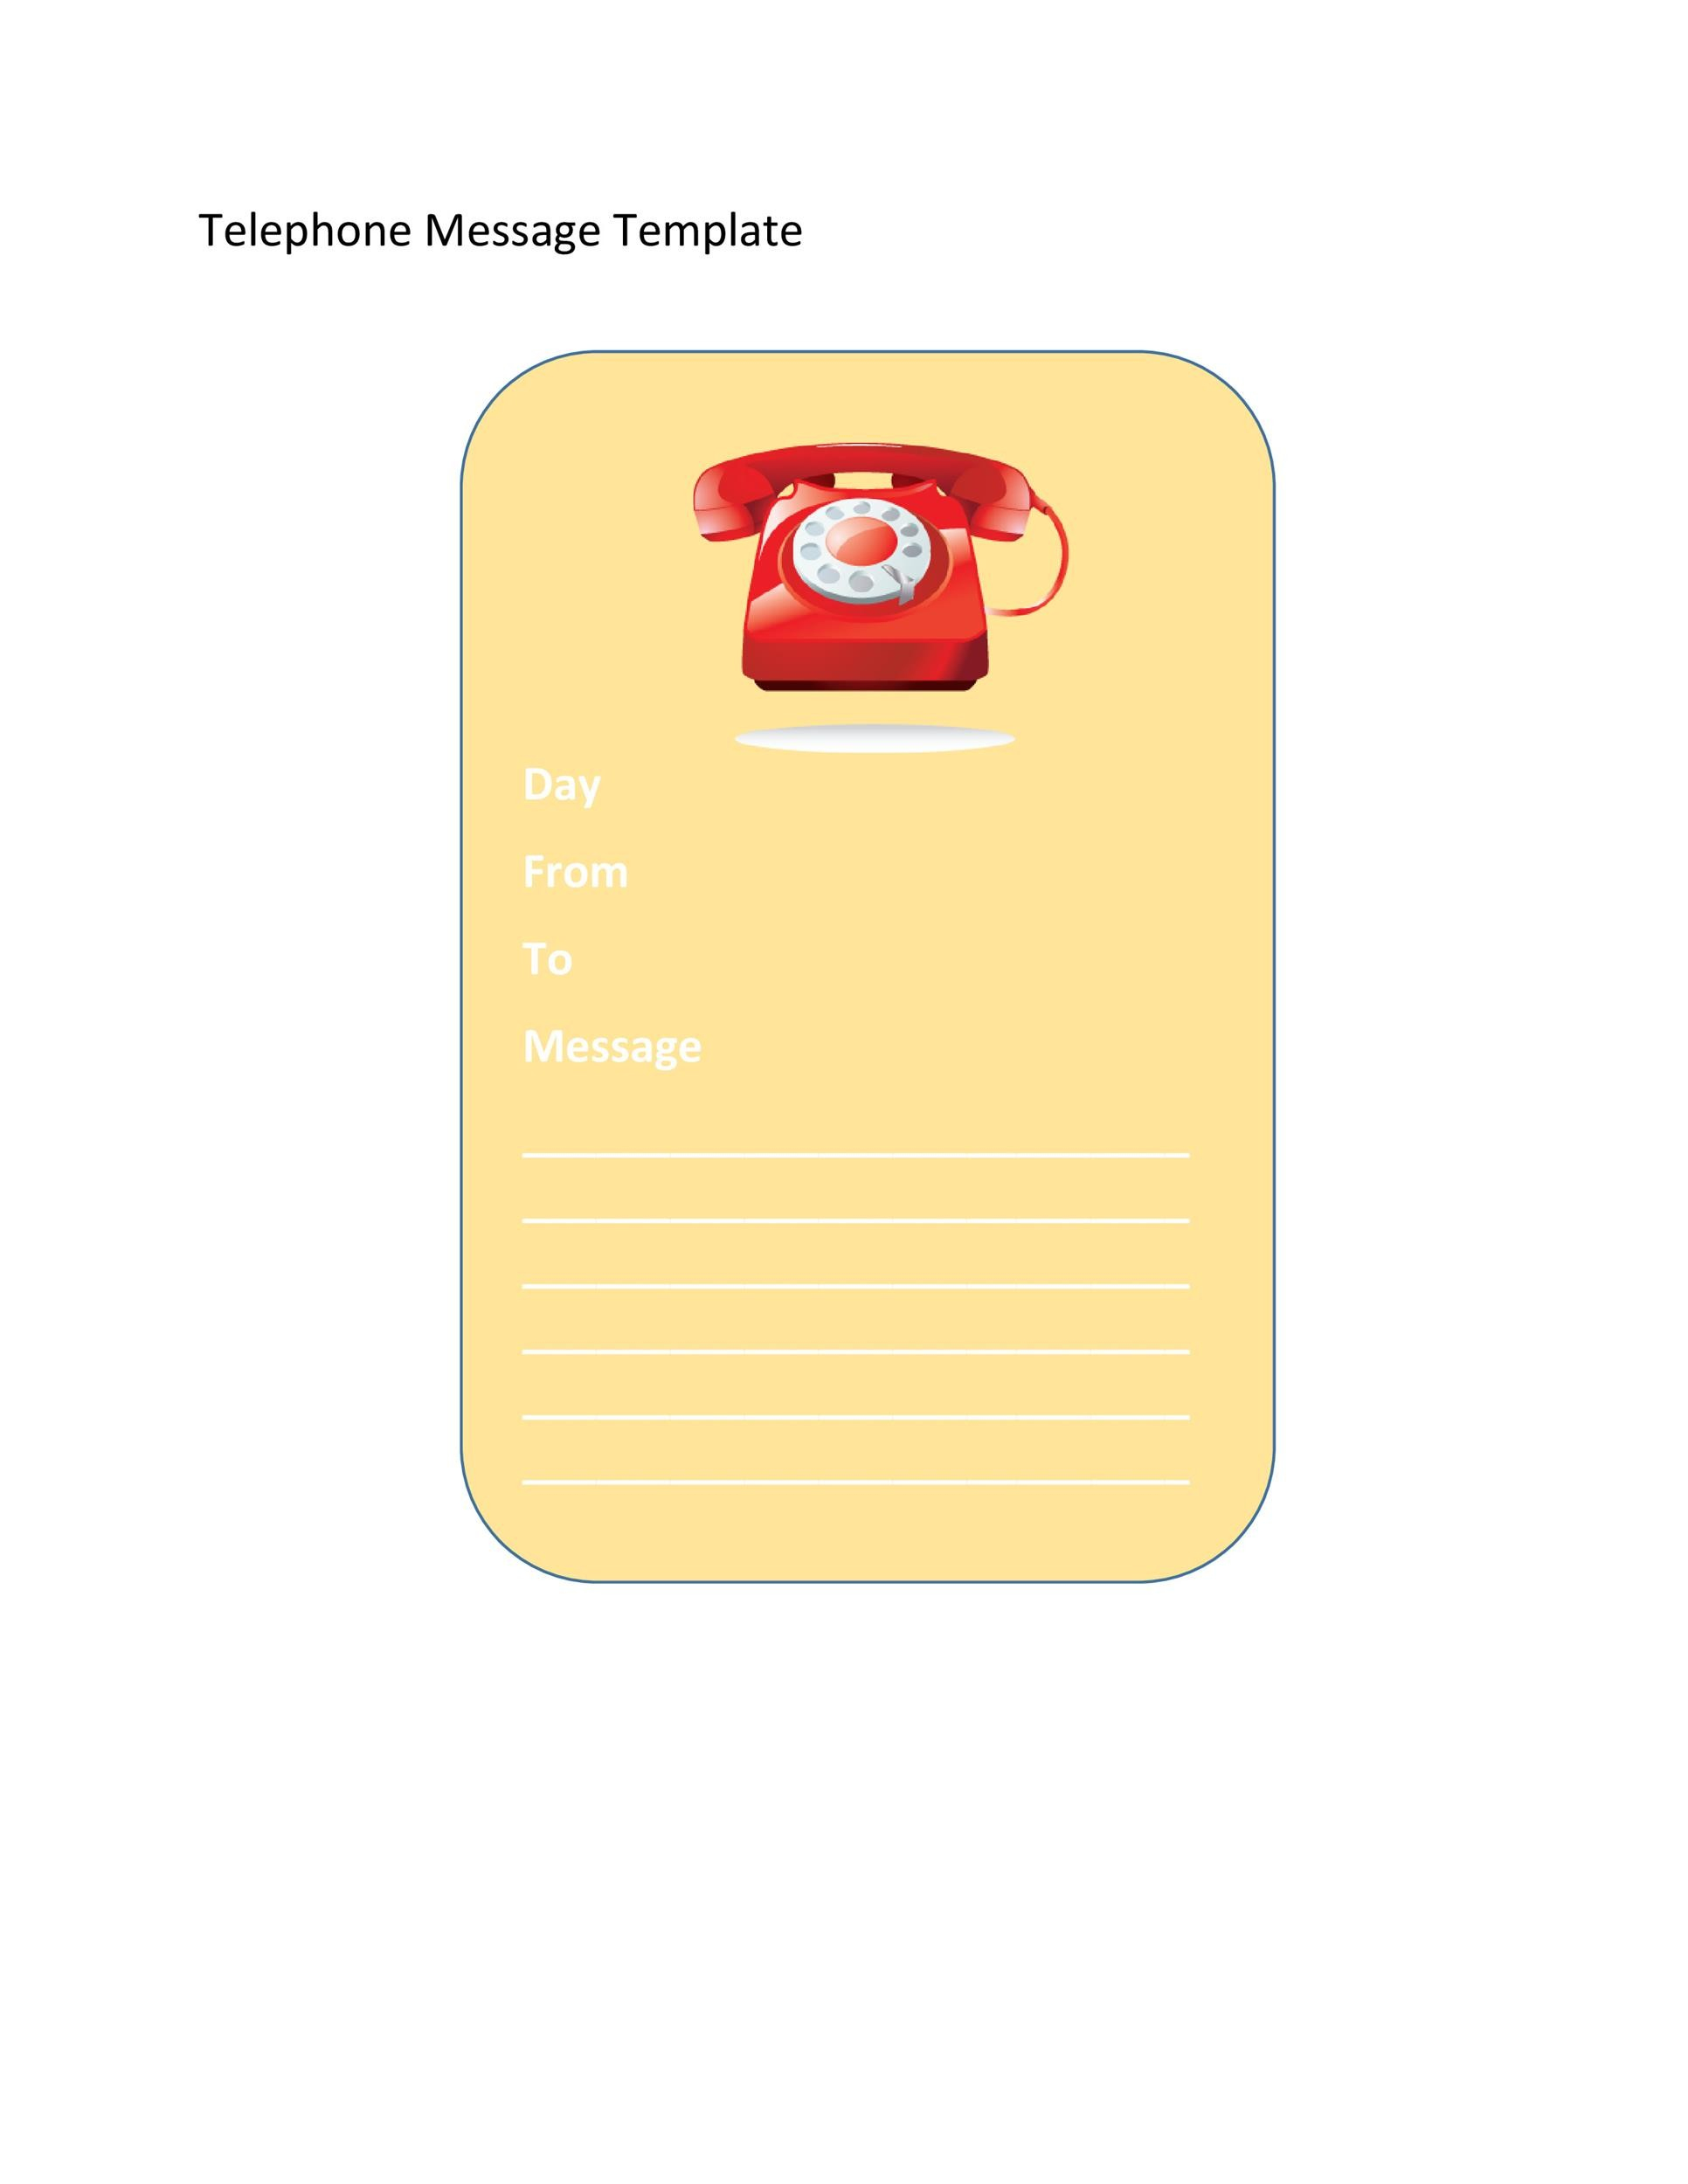 Free phone message template 30